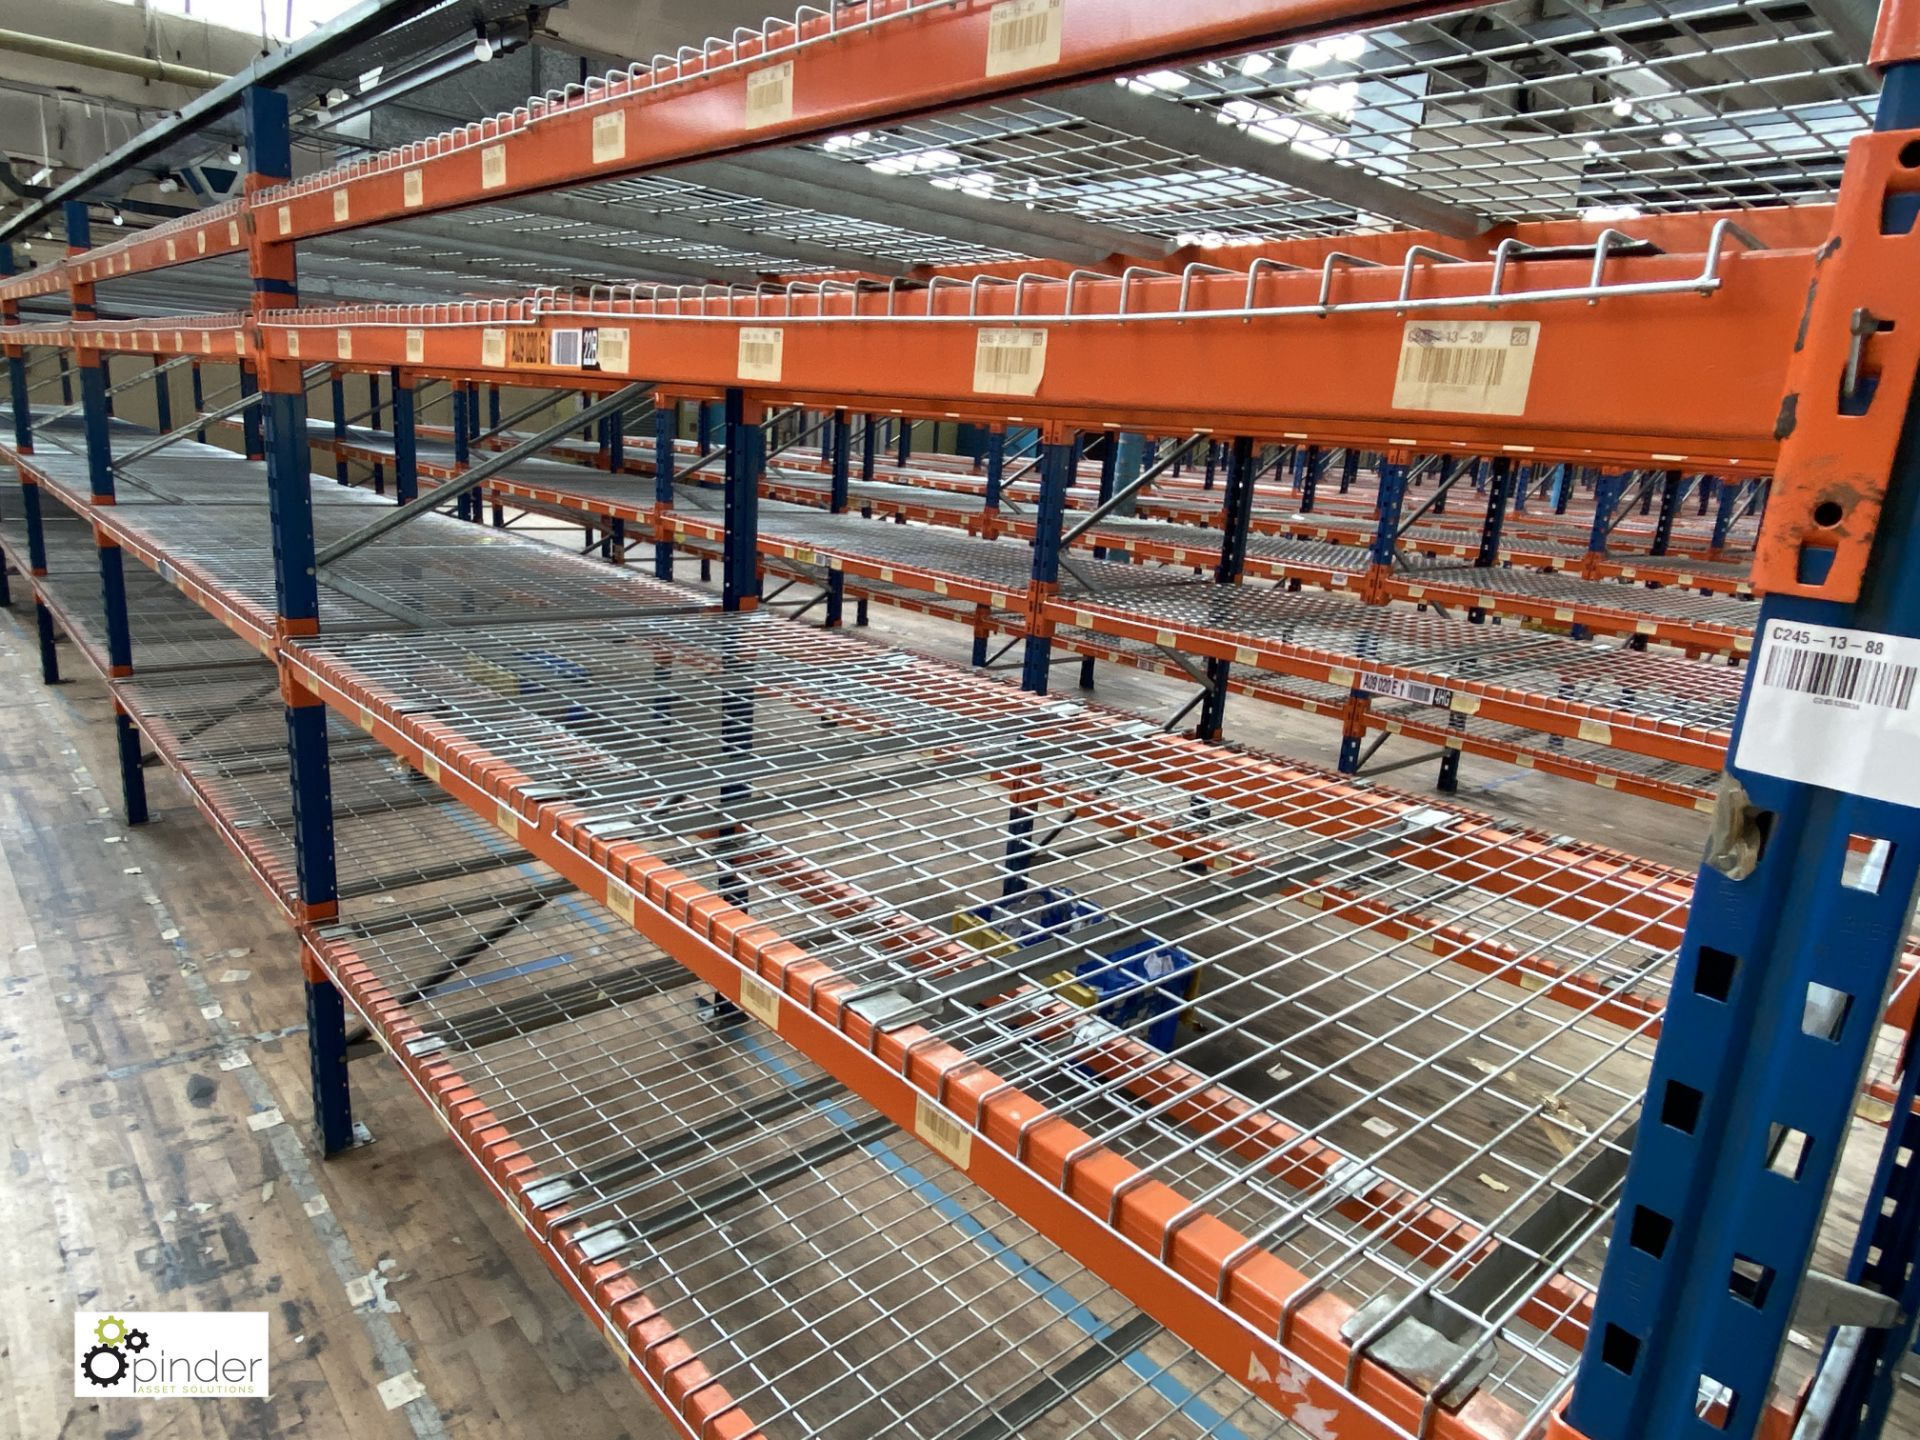 6 bays PSS 2K85 16 boltless Stock Racking, comprising 7 uprights 2400mm x 1200mm, 48 beams 2700mm, - Image 3 of 4